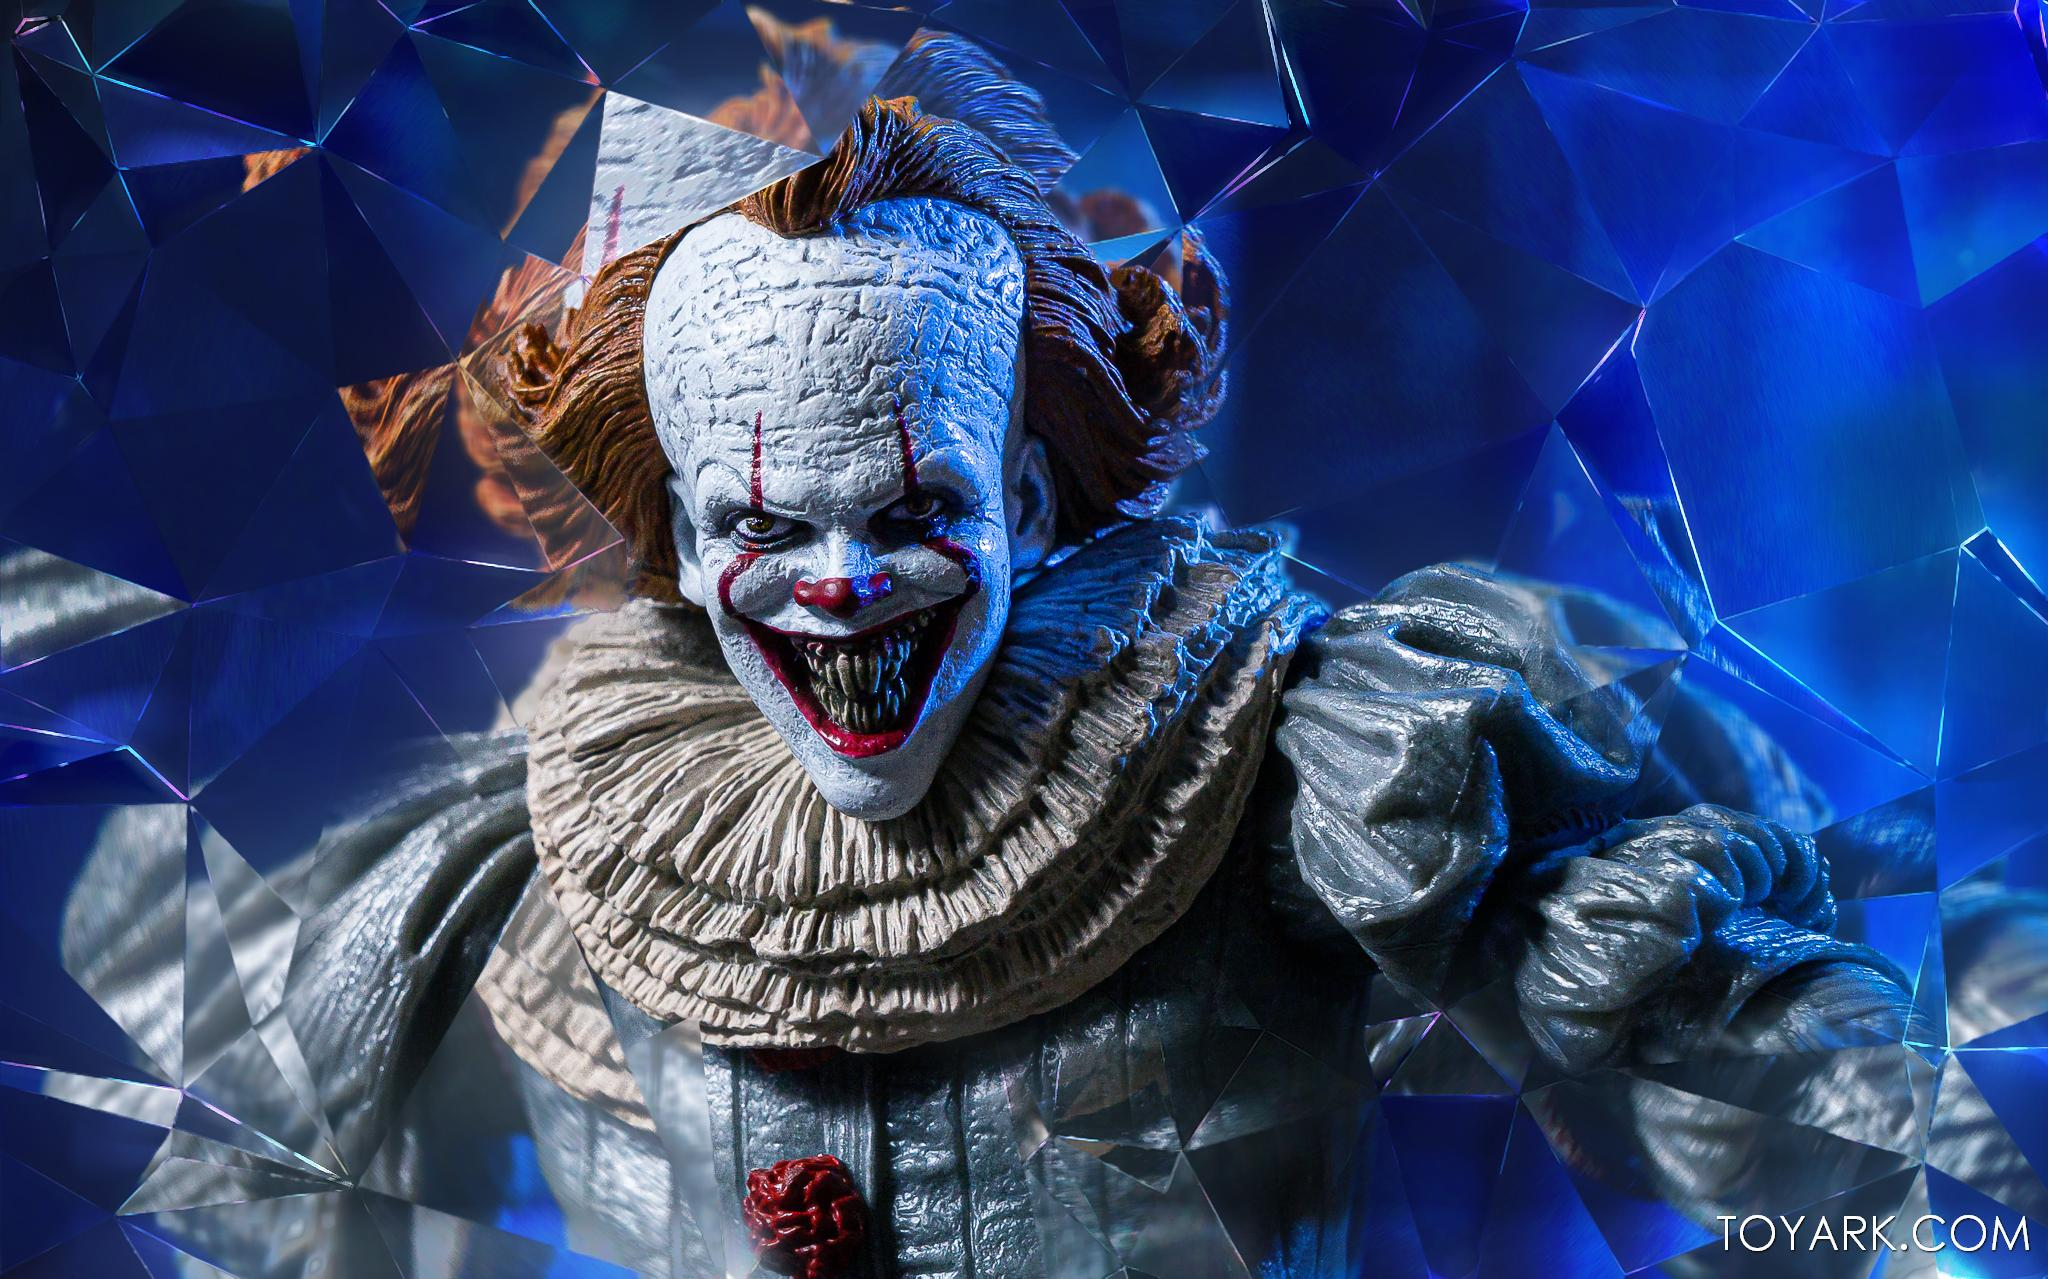 https://news.toyark.com/wp-content/uploads/sites/4/2020/06/NECA-IT-2-Ultimate-Pennywise-038.jpg